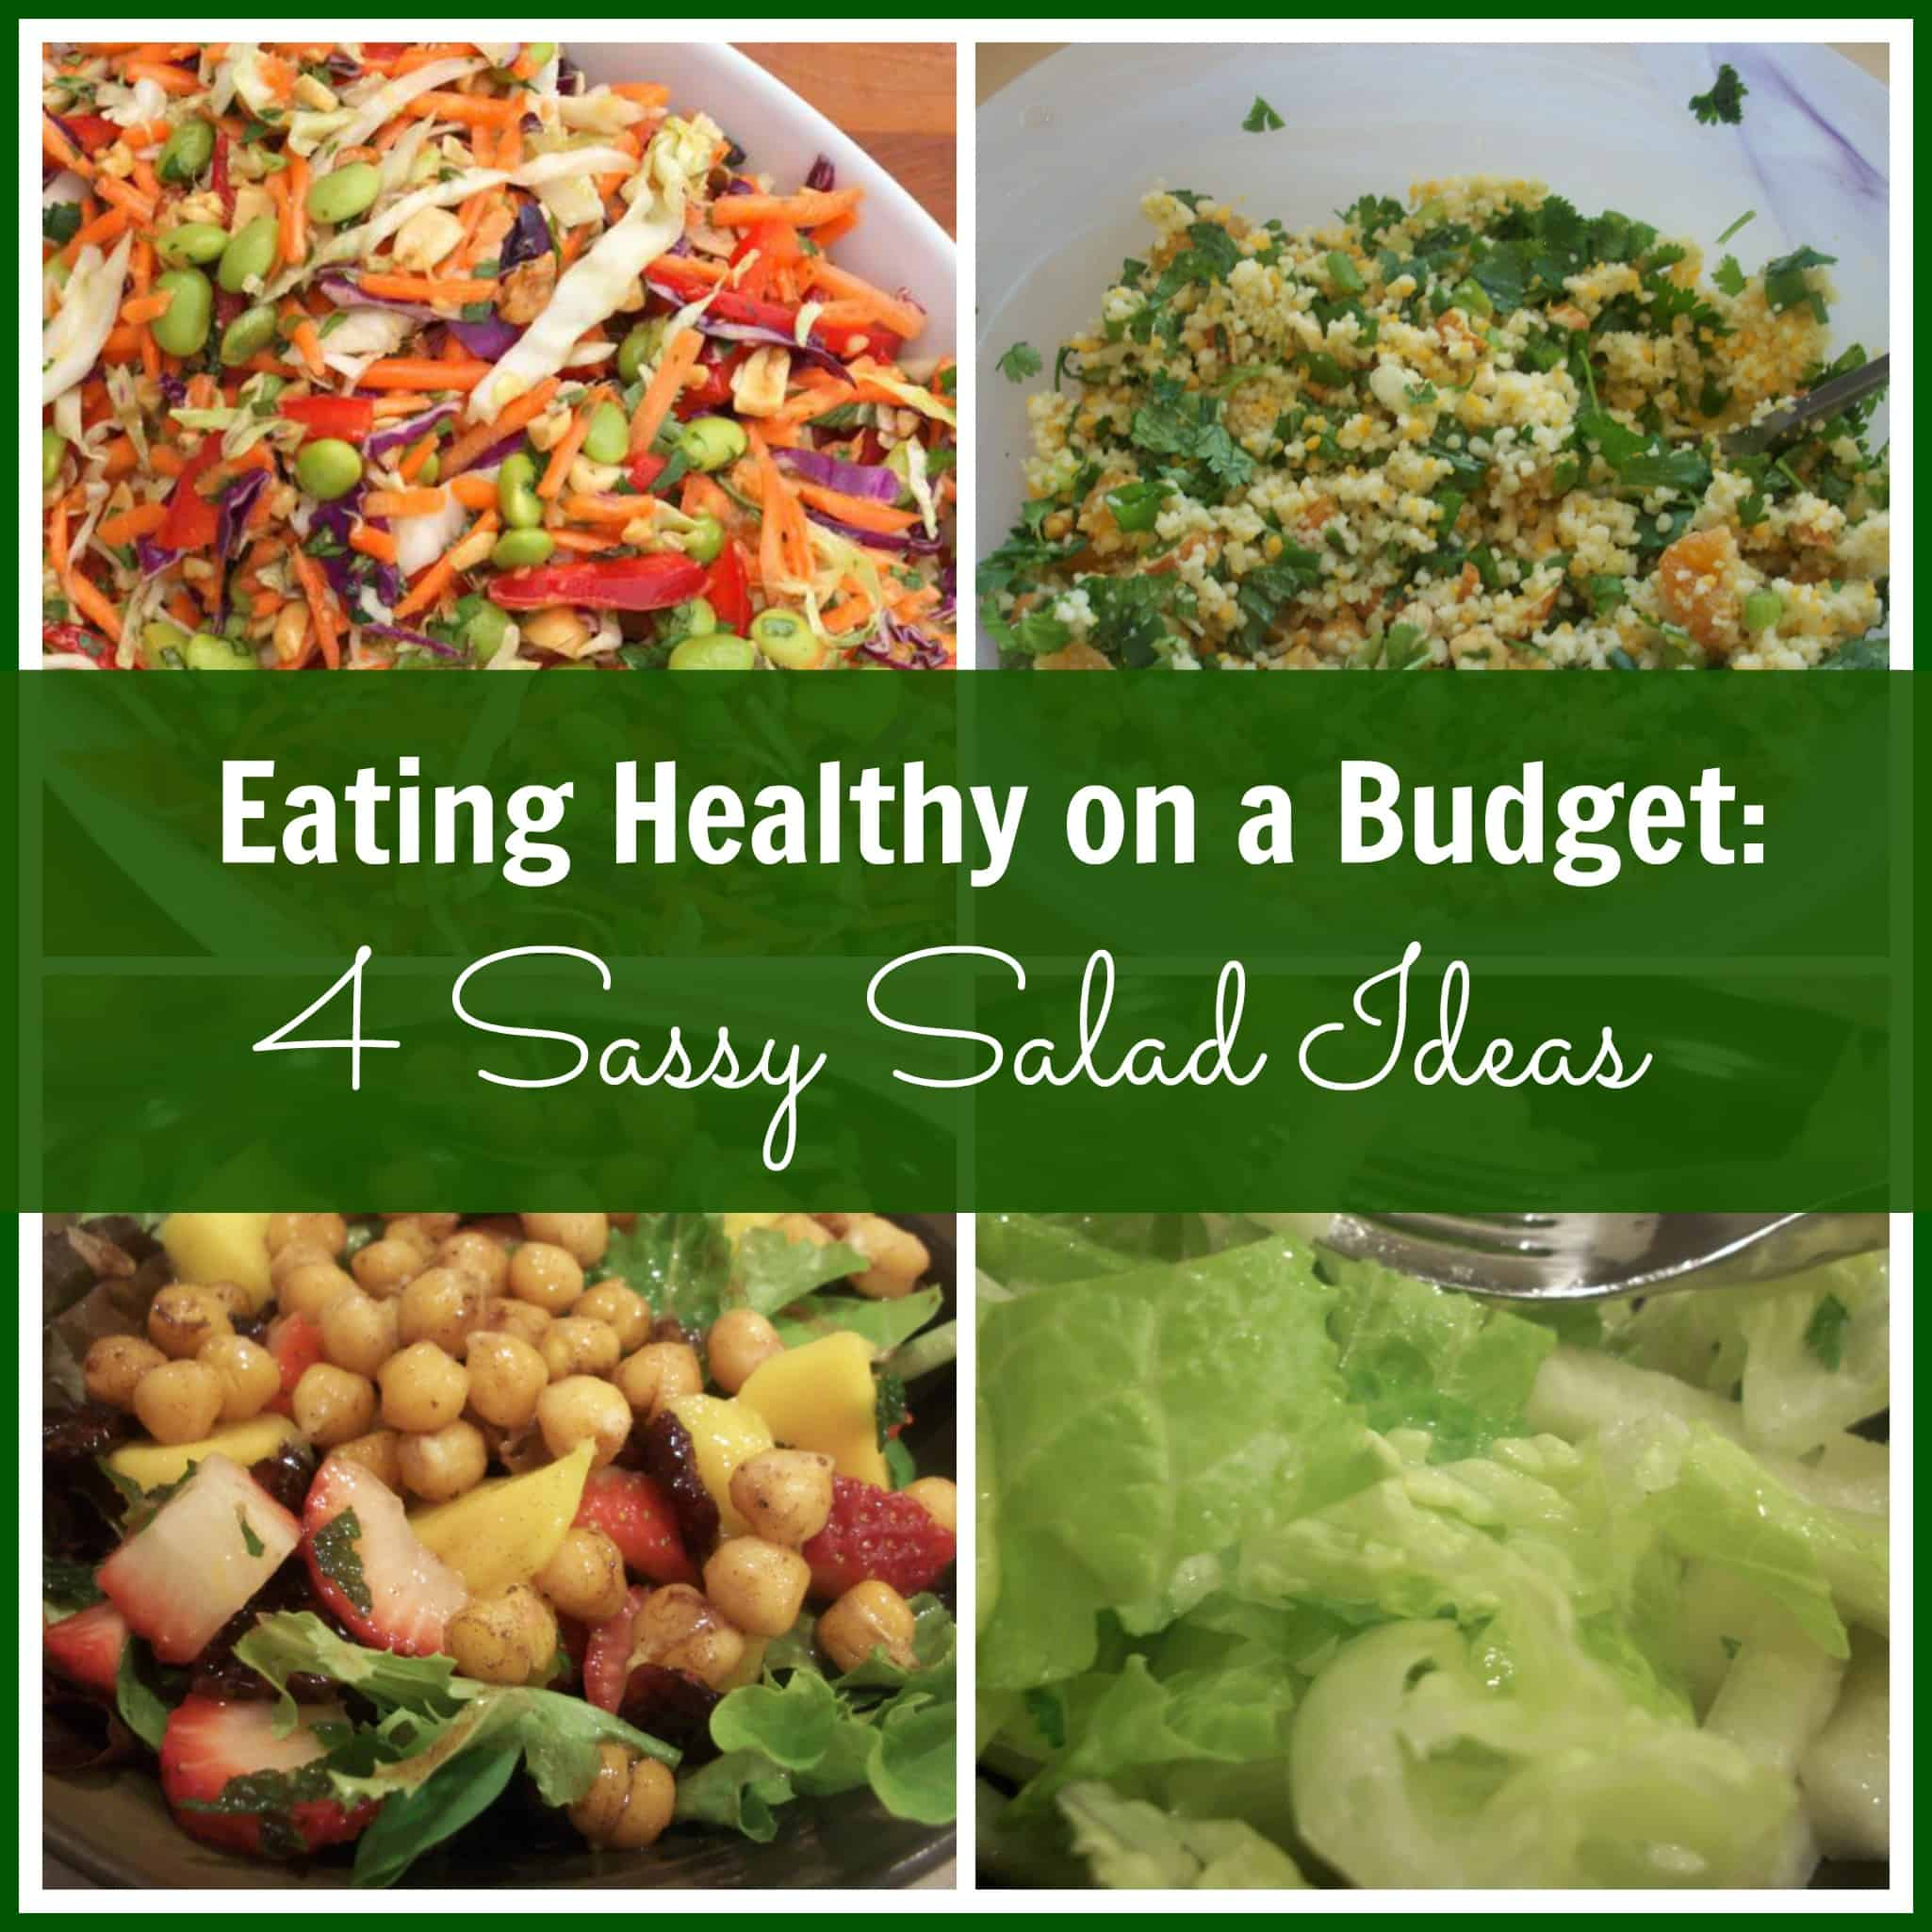 Salads don't have to be boring - here are four different budget-friendly recipes to mix up your lunch a bit!